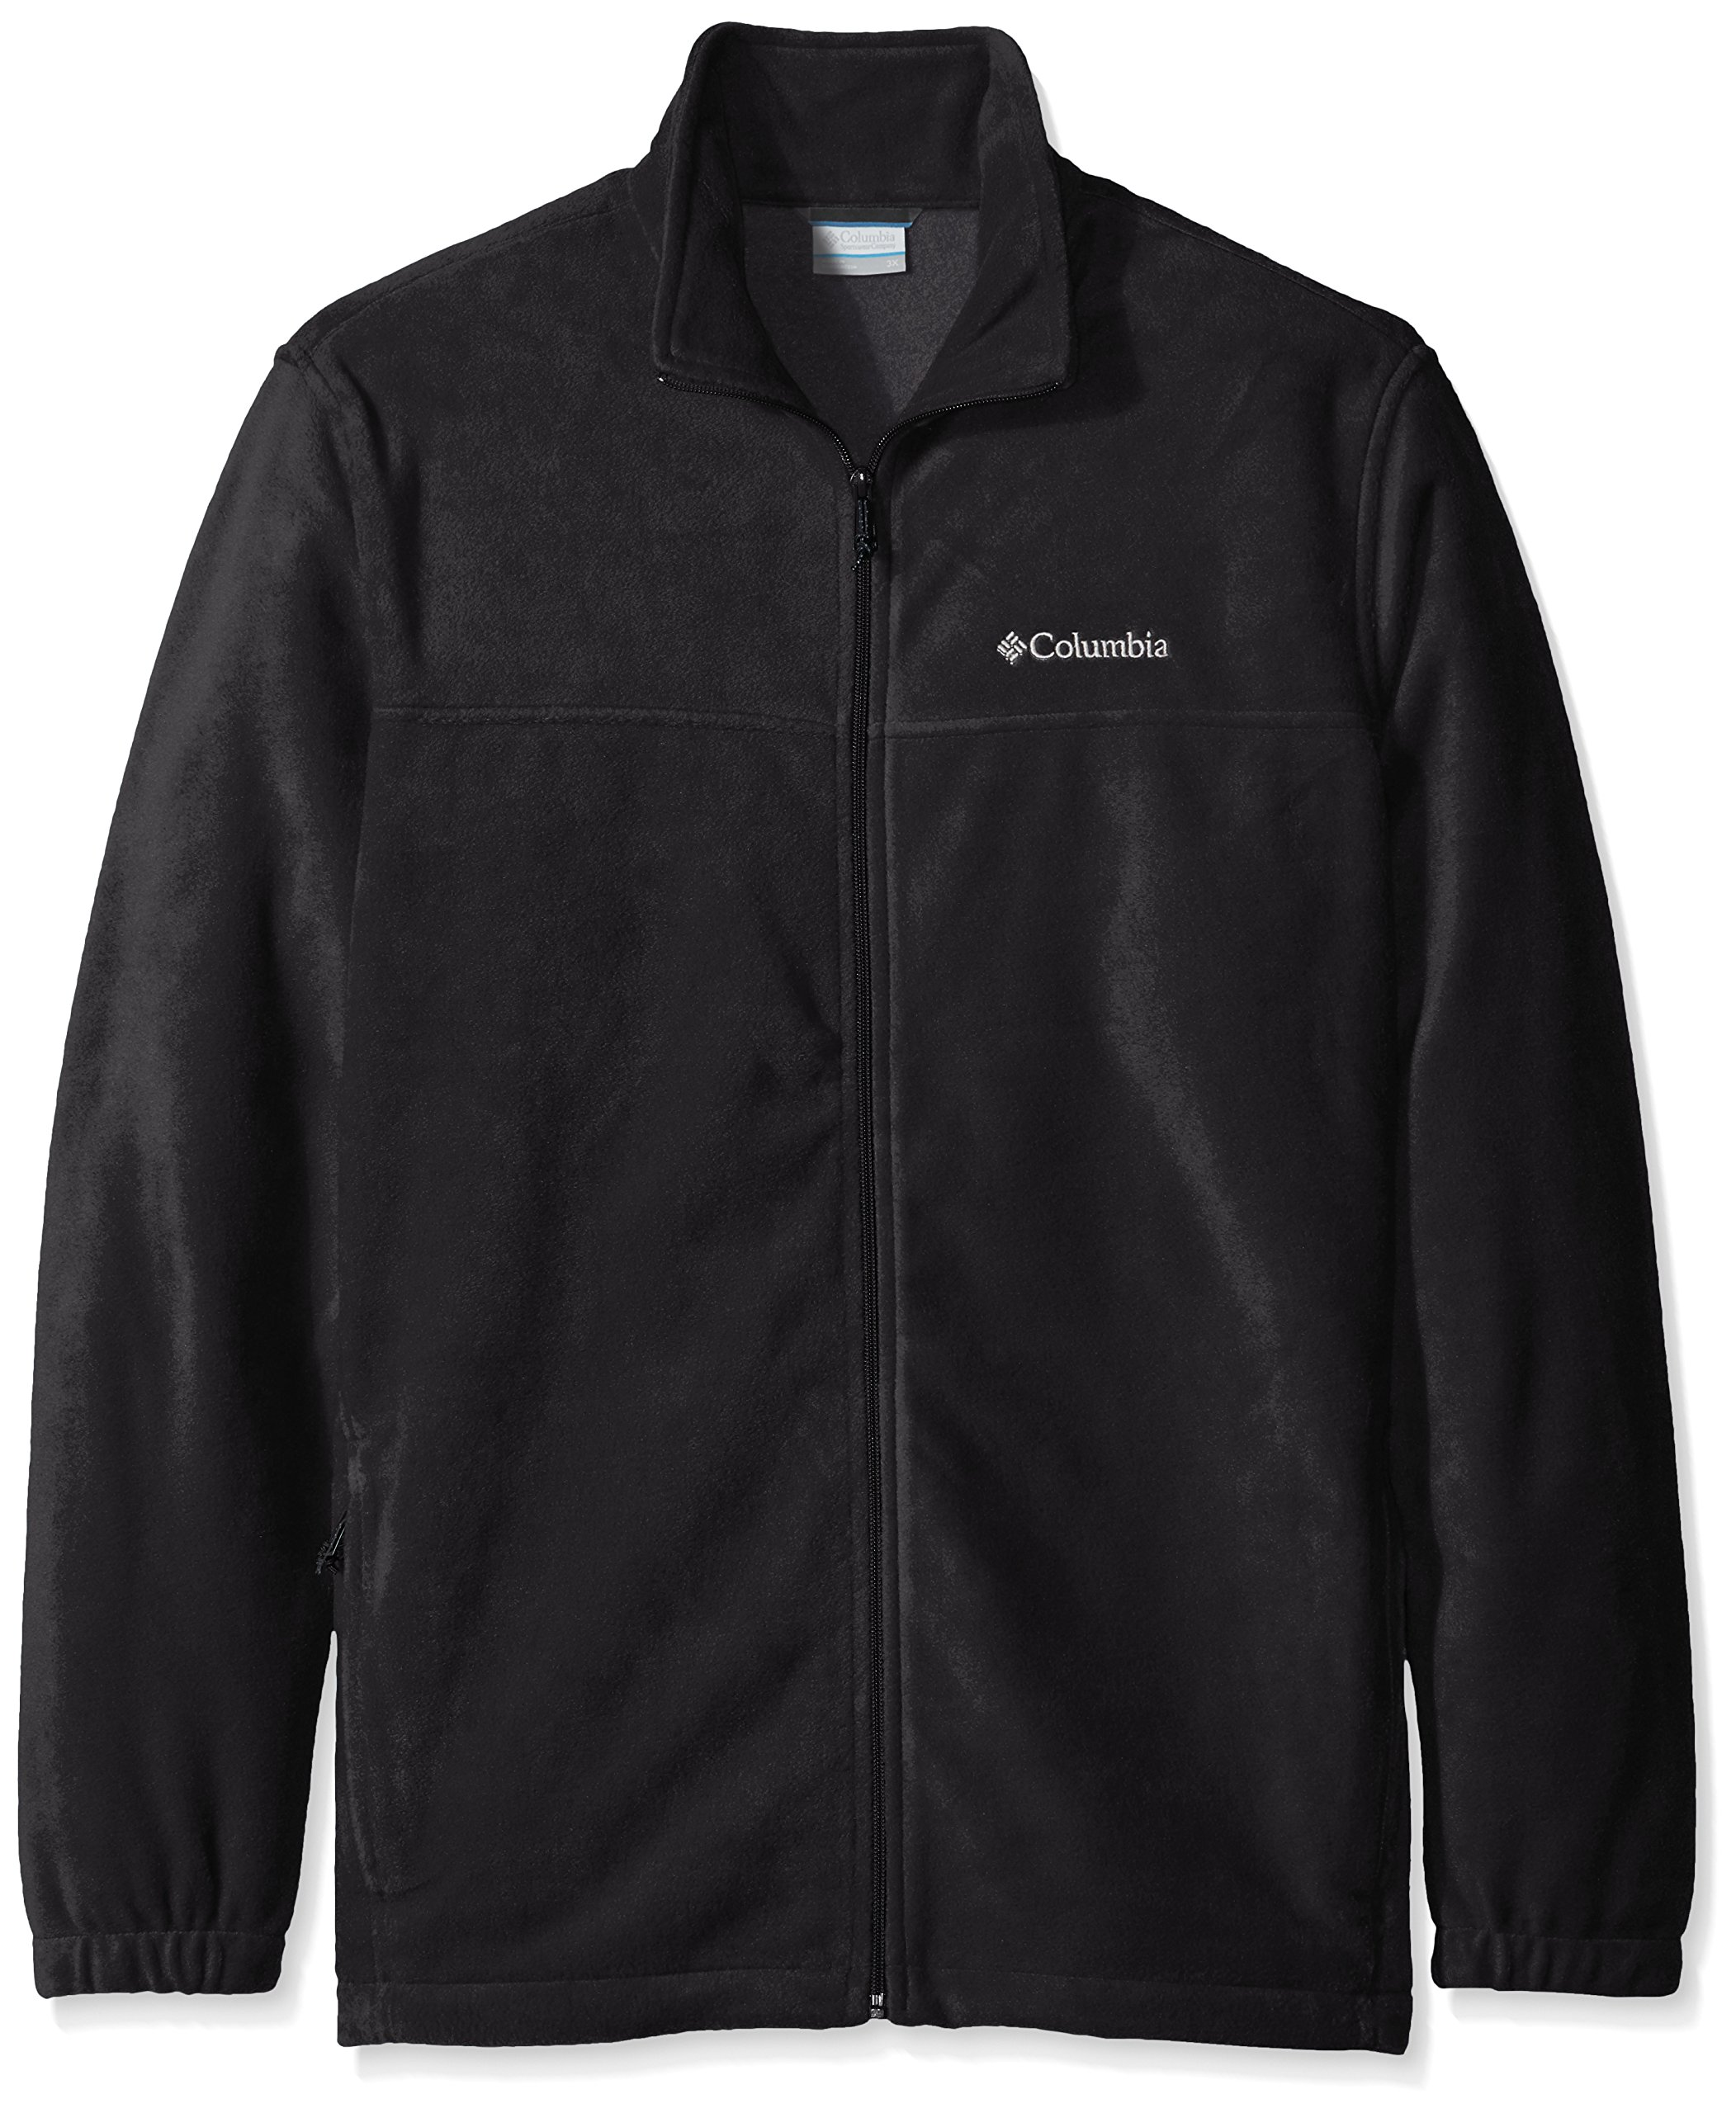 Columbia Men's Steens Mountain Full Zip 2.0 Soft Fleece Jacket, Black, 4X